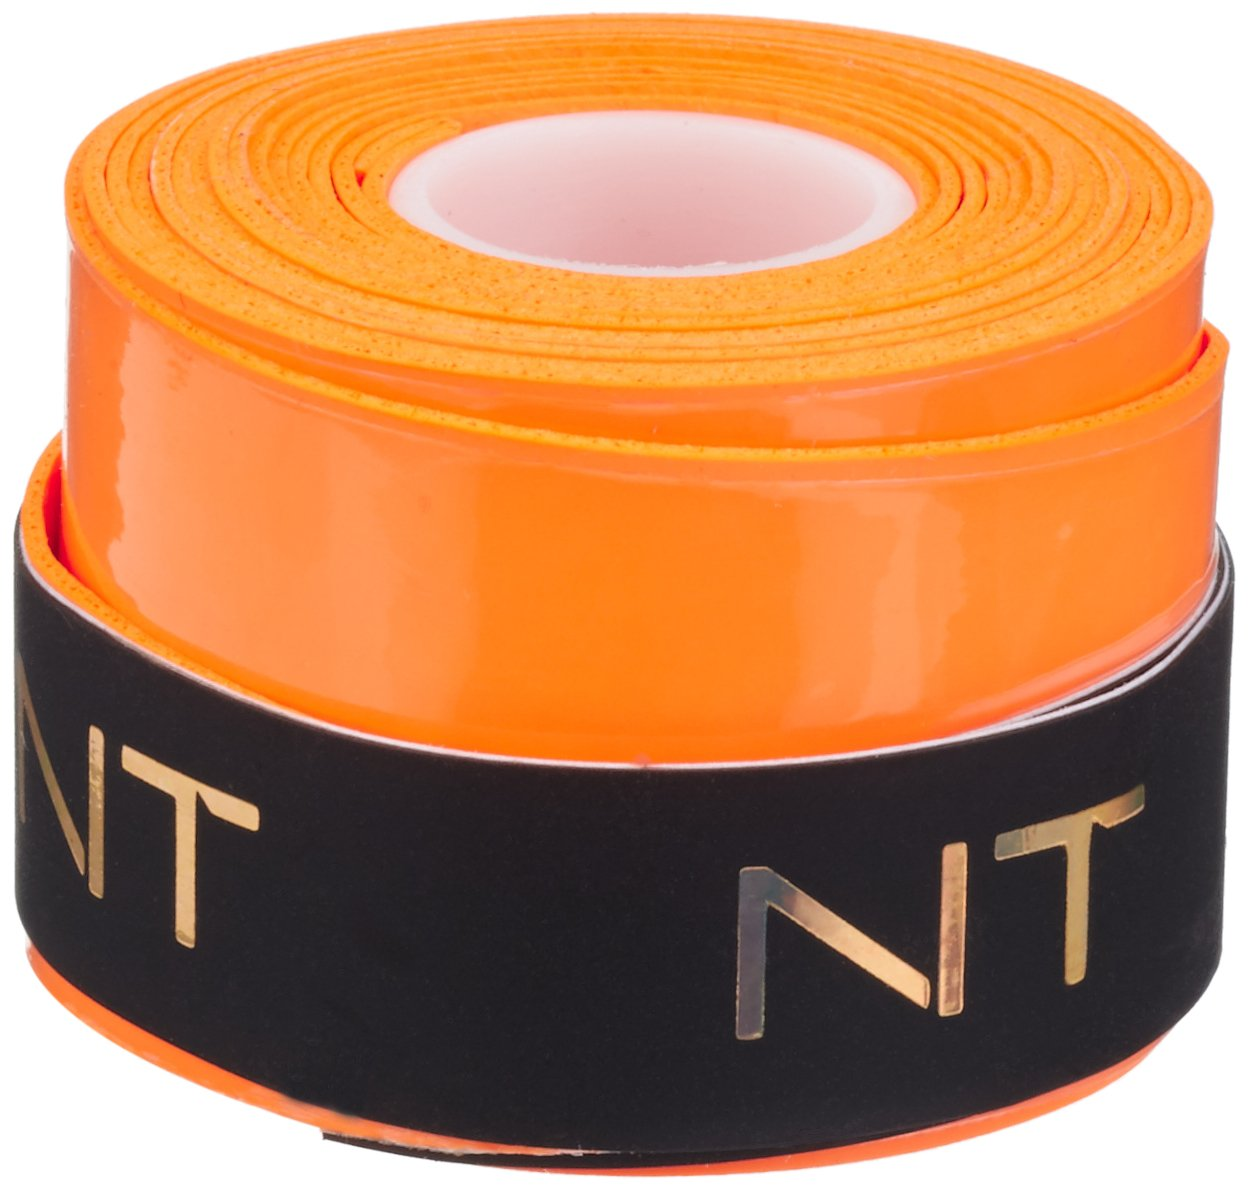 Dunlop Over Grip Revolution NT Tacky 3 Unidades, Naranja, One Size ...